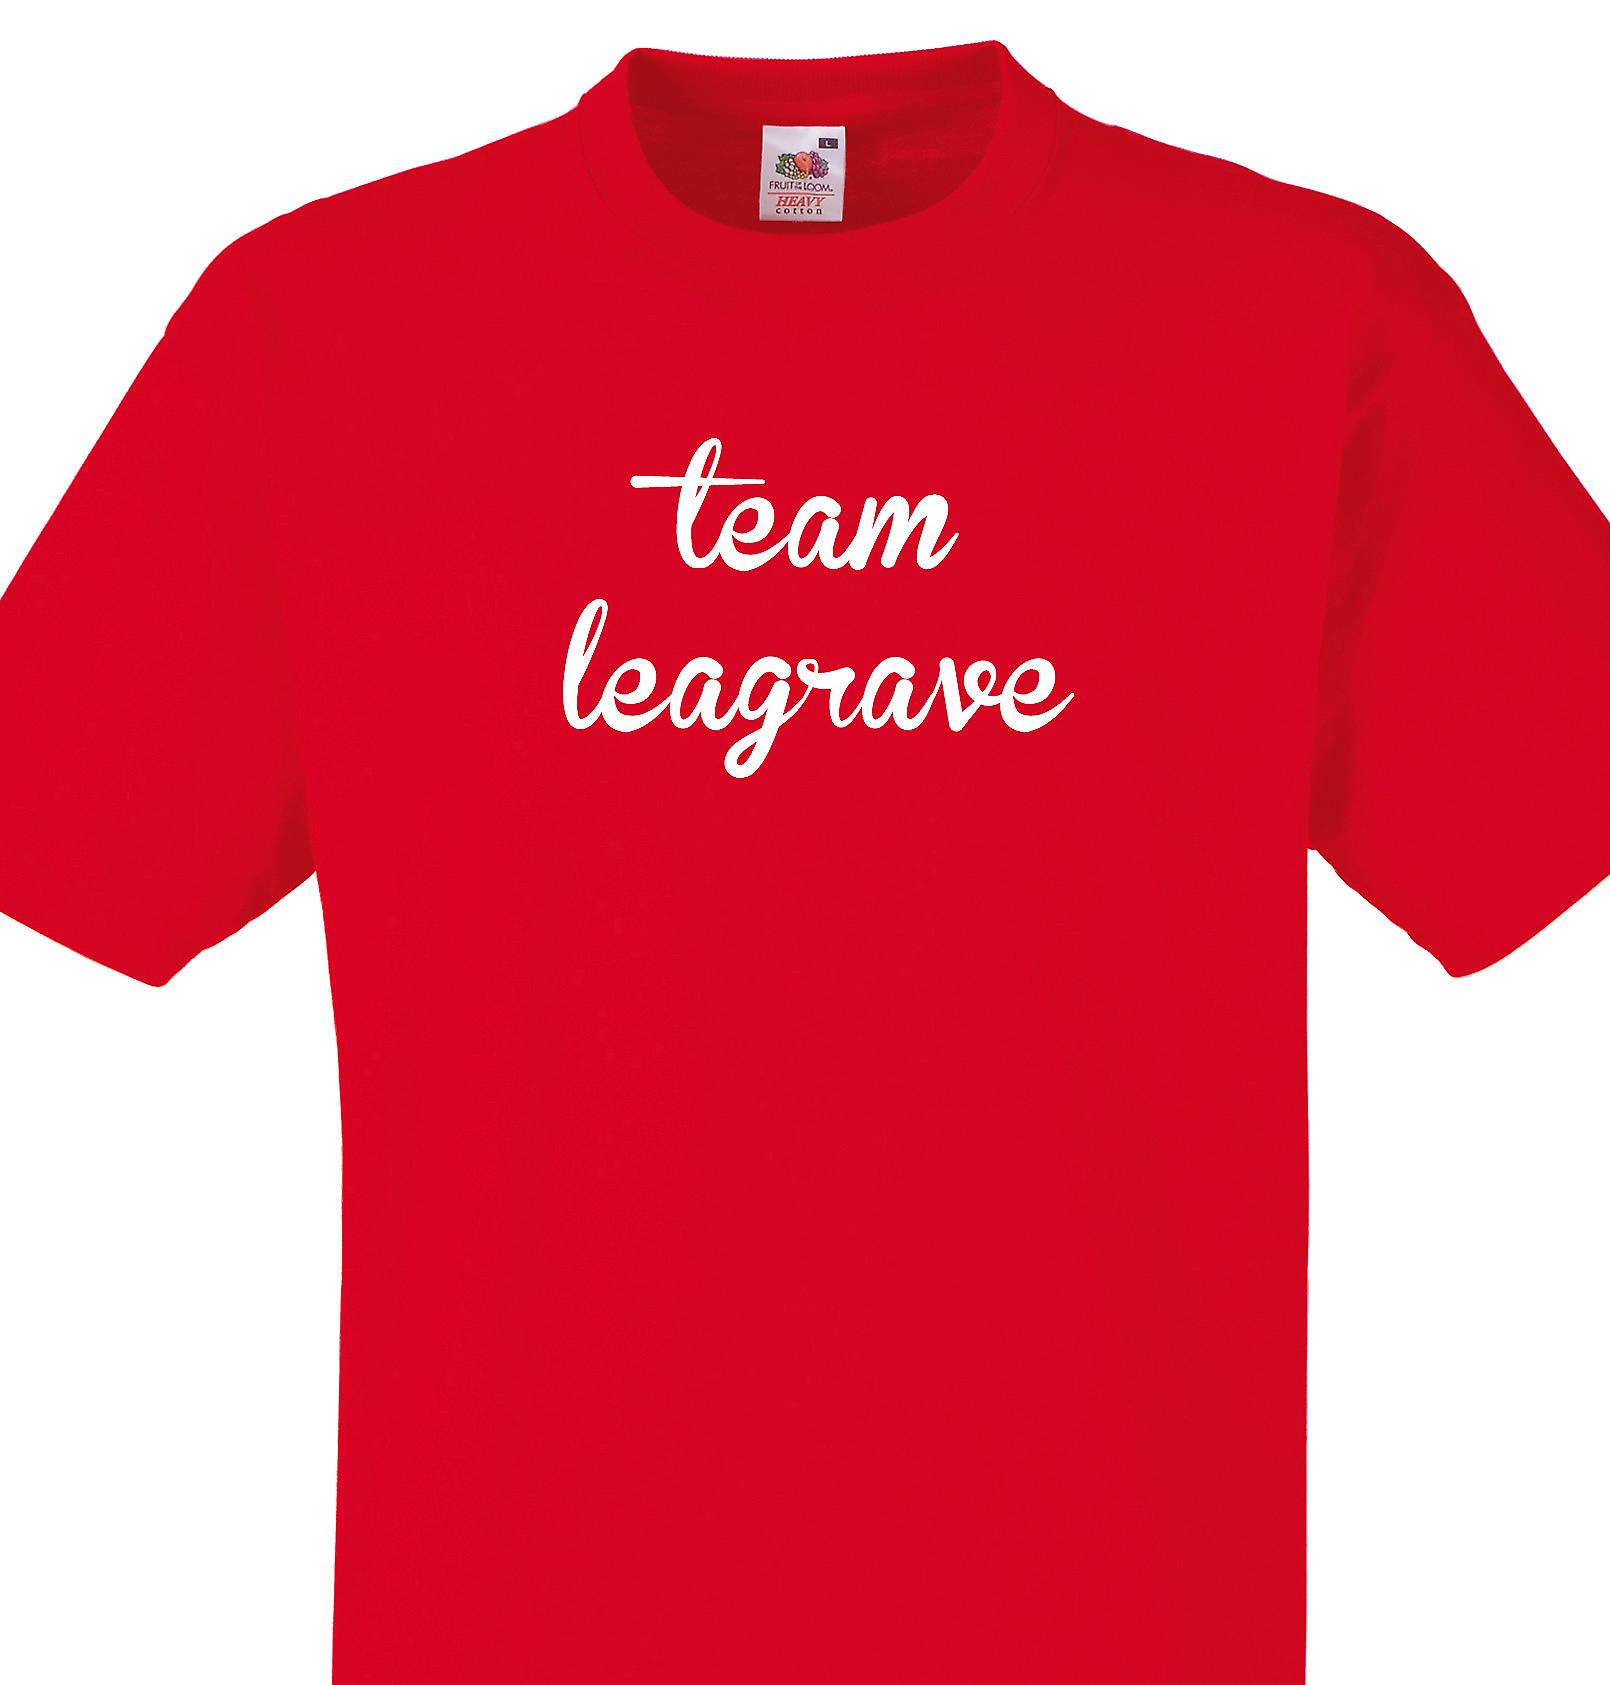 Team Leagrave Red T shirt